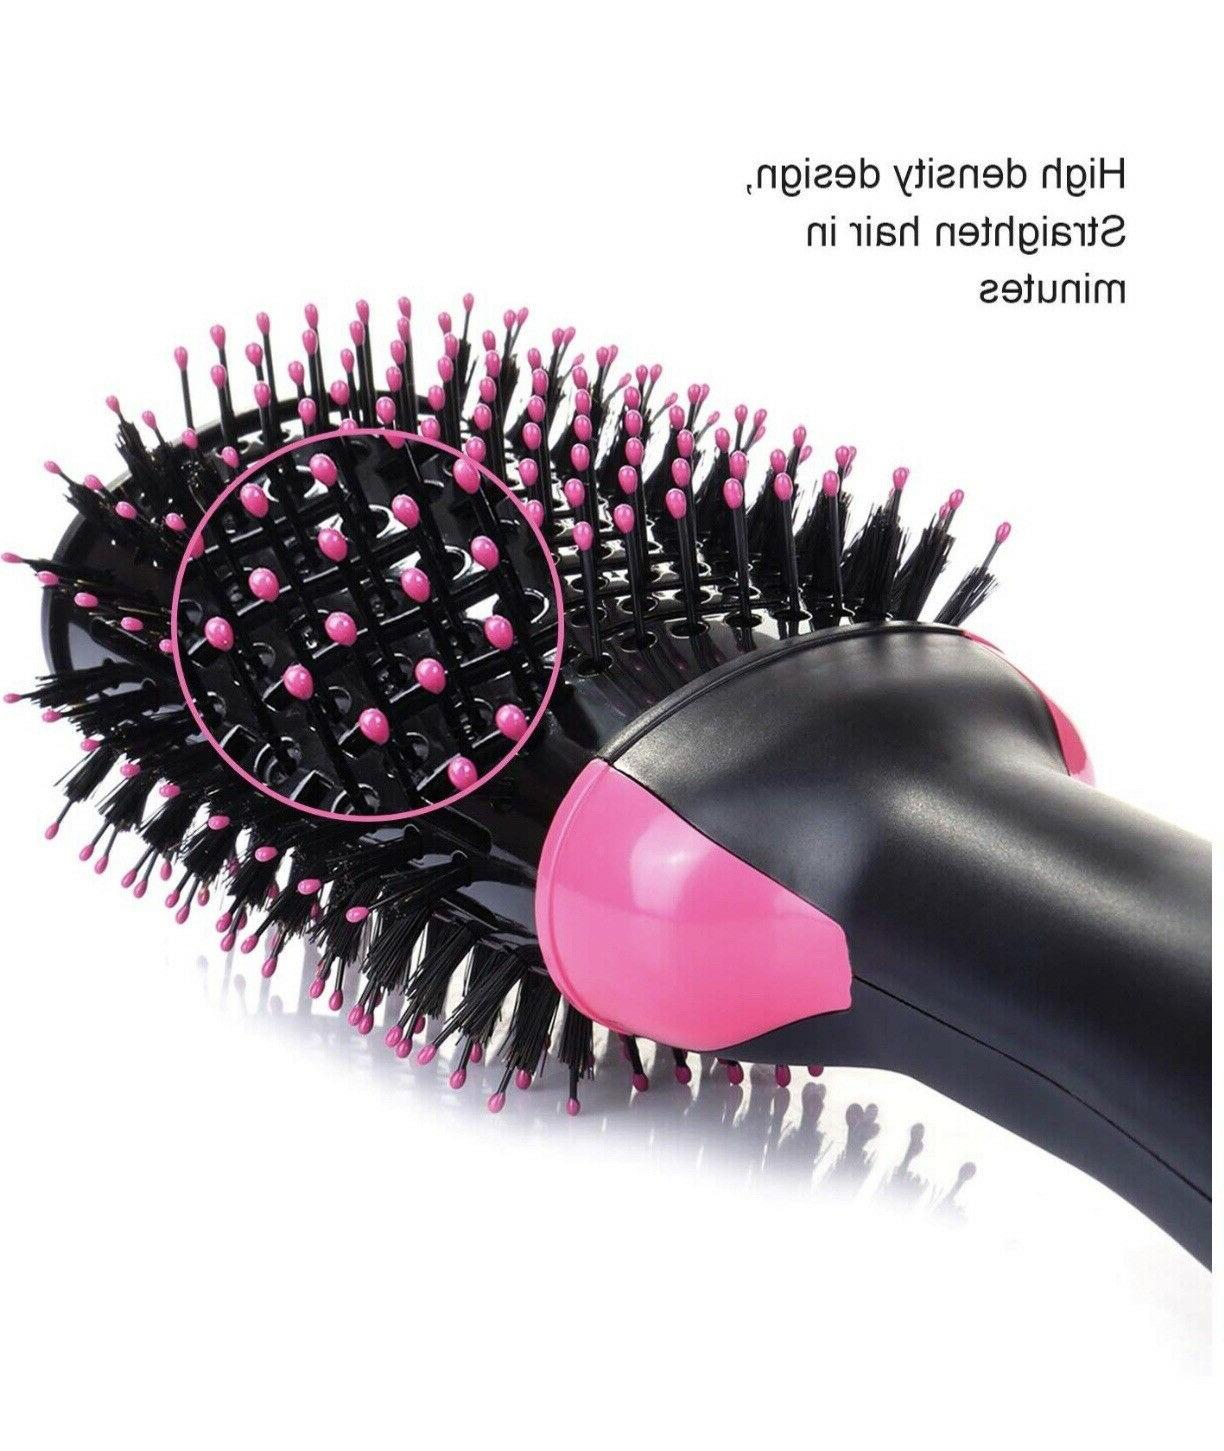 2-in-1 Hair Blow Dryer Volumizer Comb Infrared Hot Air Brush